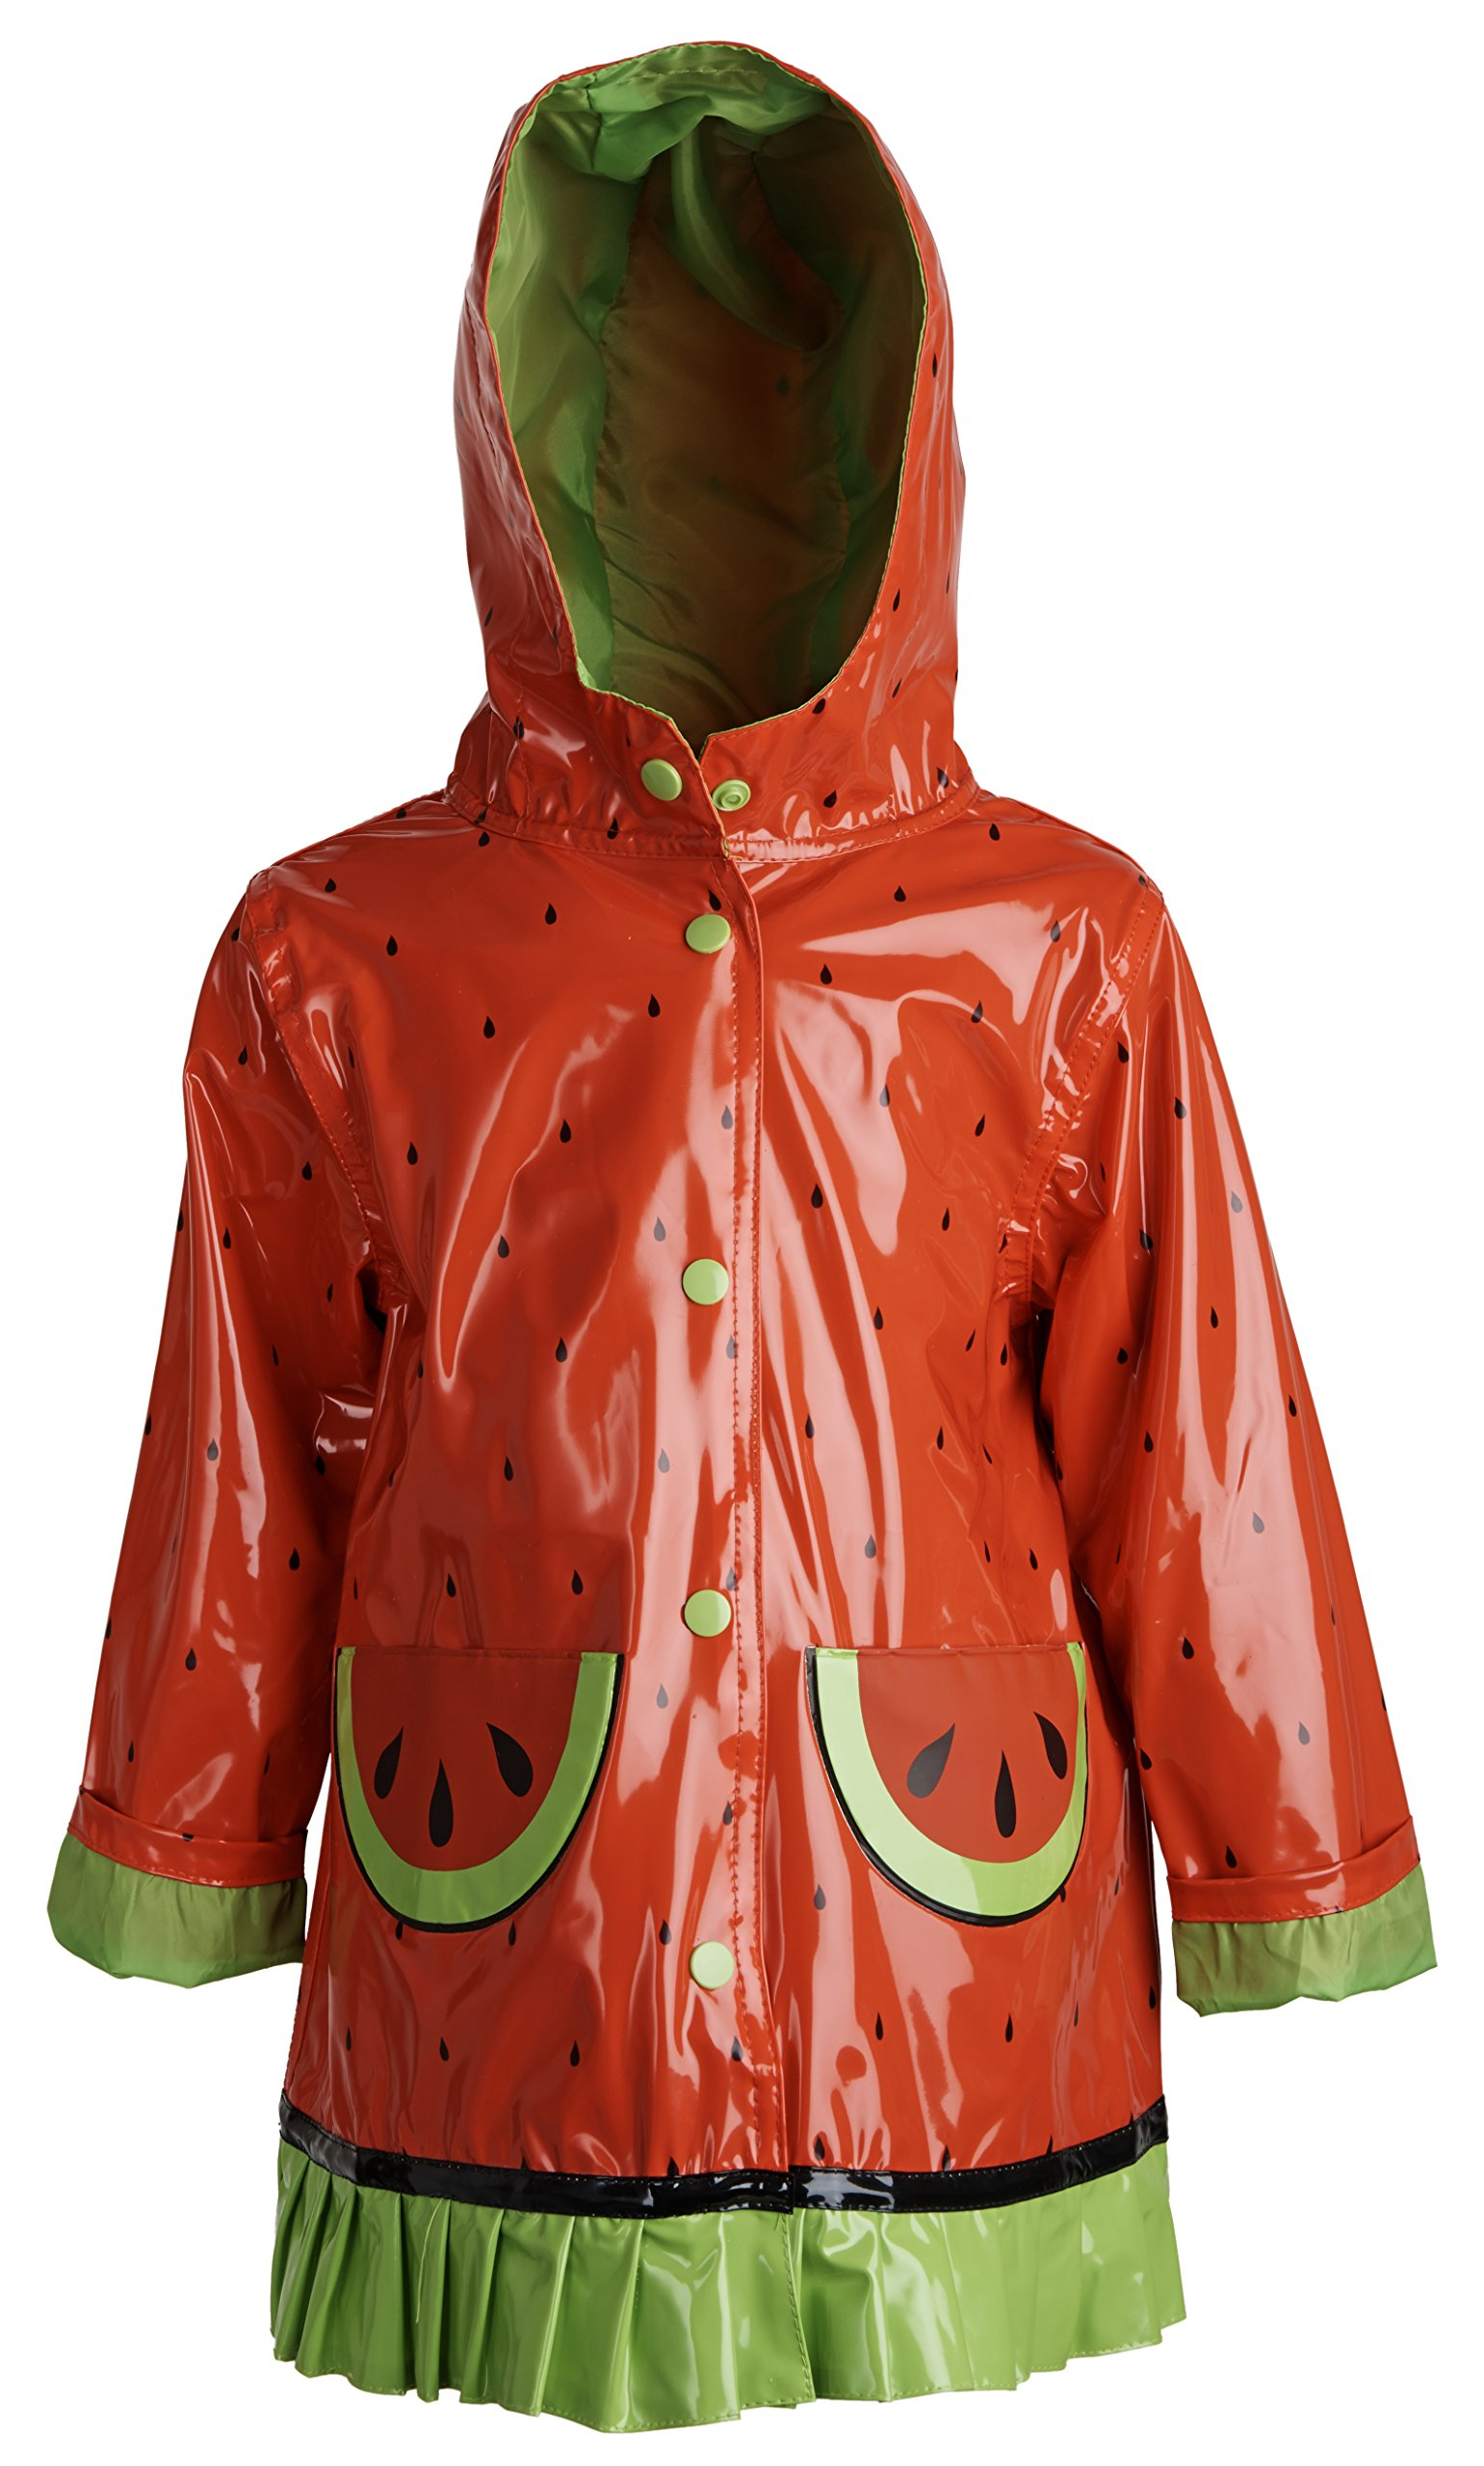 Wippette Baby Girls Waterproof Vinyl Fully Lined Hooded Watermelon Rain Jacket - Tomato (24 Months) by Wippette